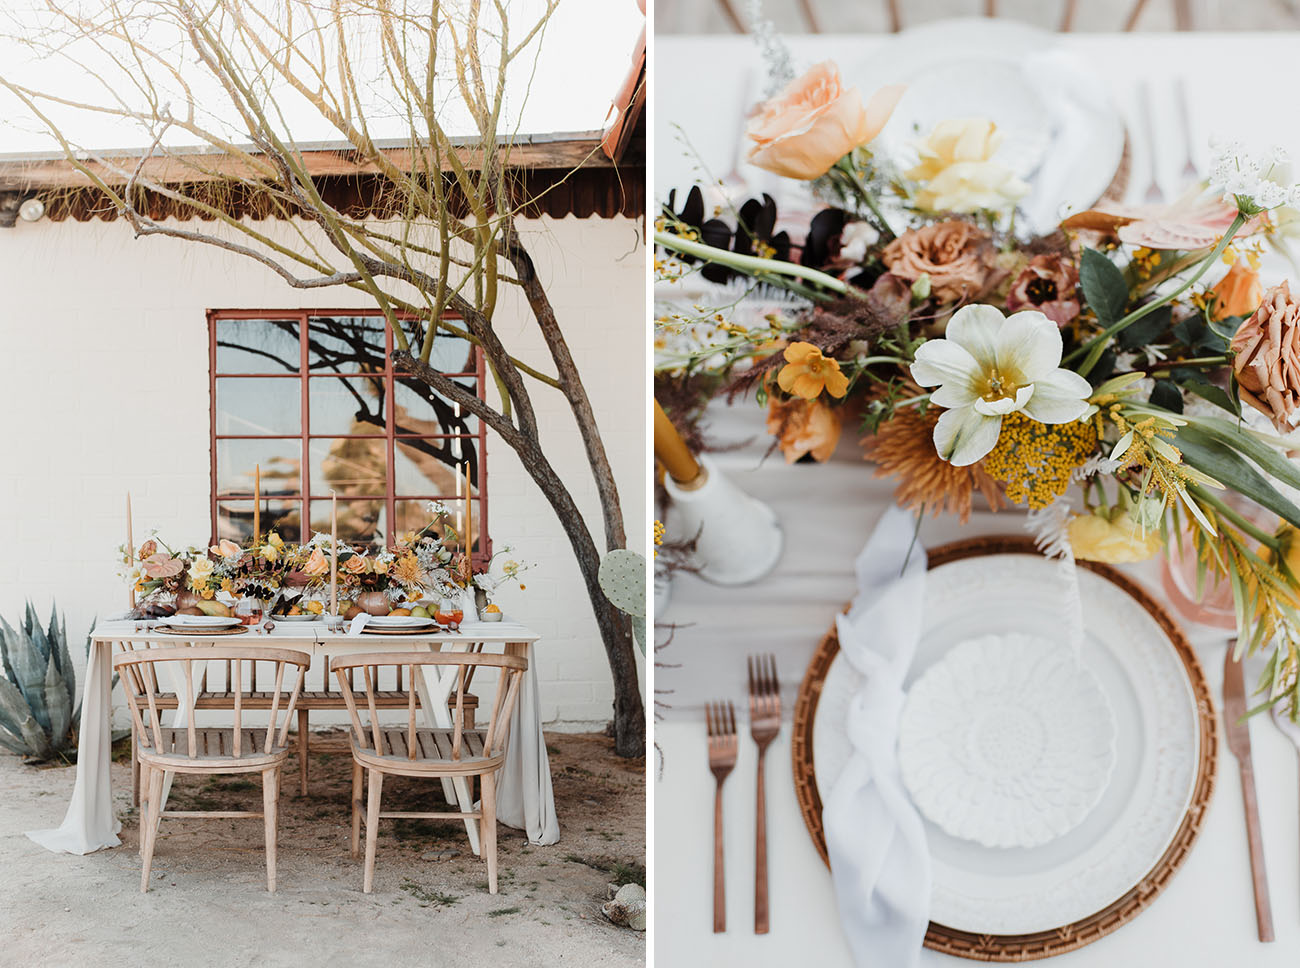 The wedding table setting was gorgeous and very boho like, with delicate blooms and candles